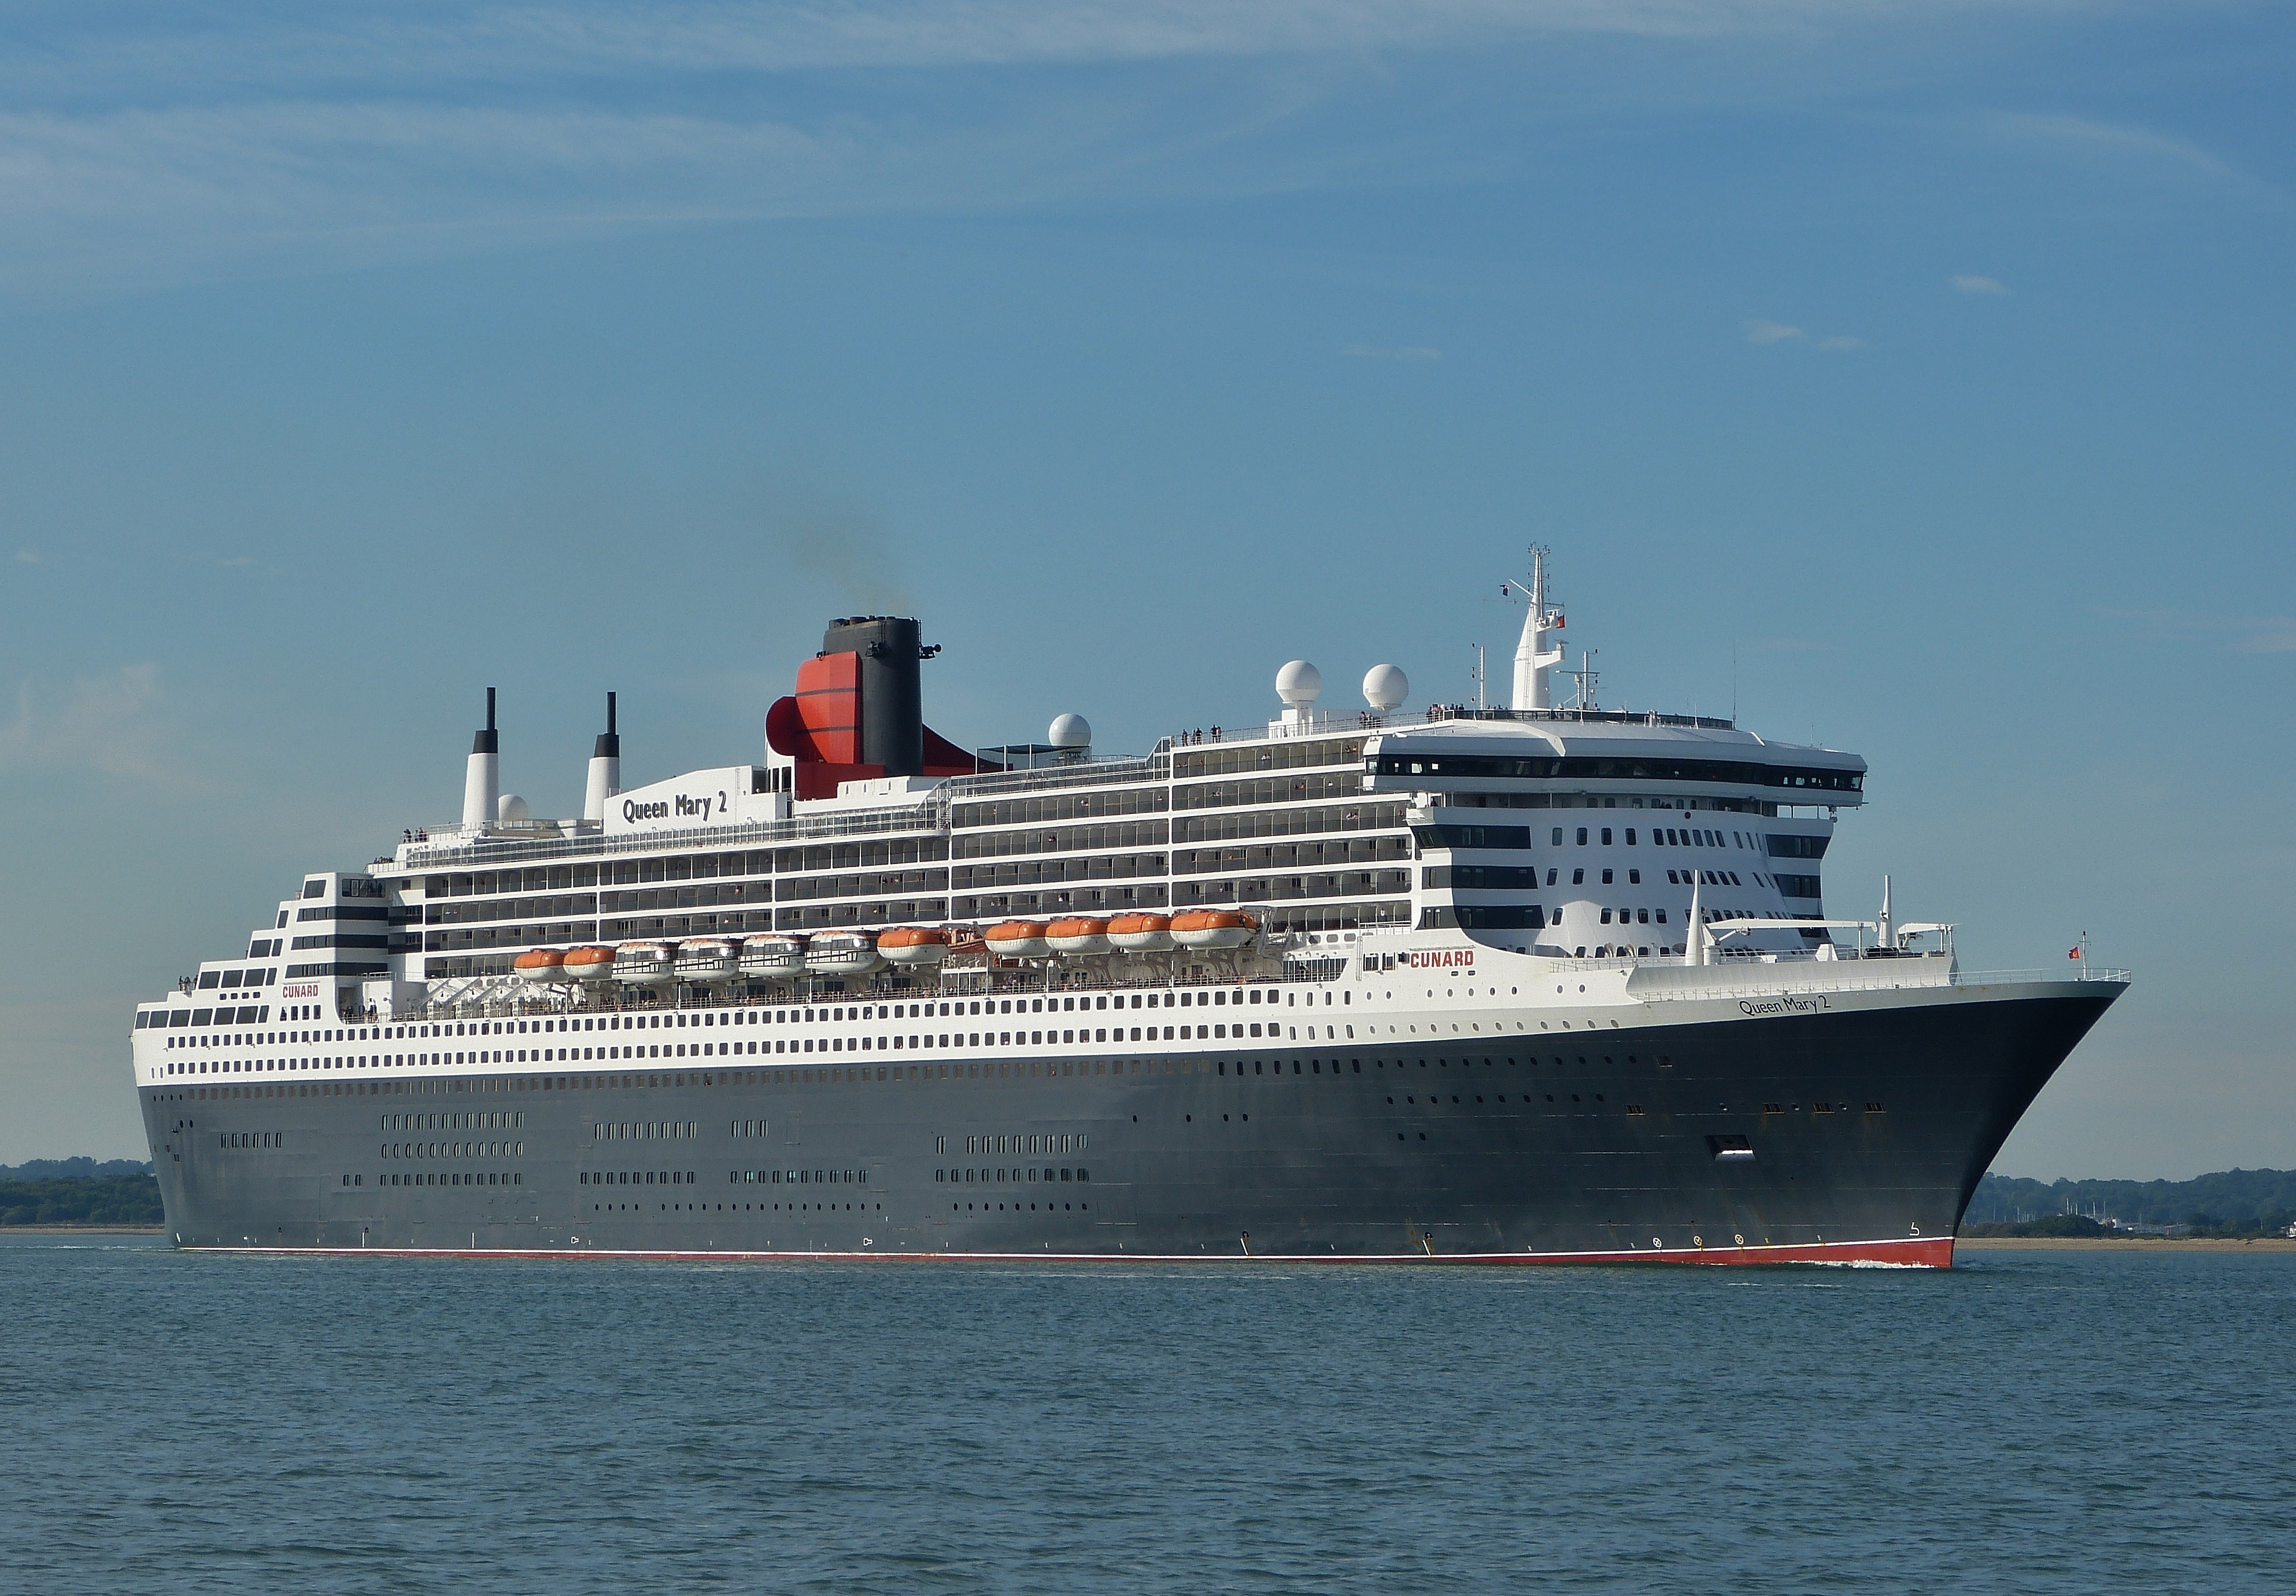 Calshot southampton cruise ship queen mary 2